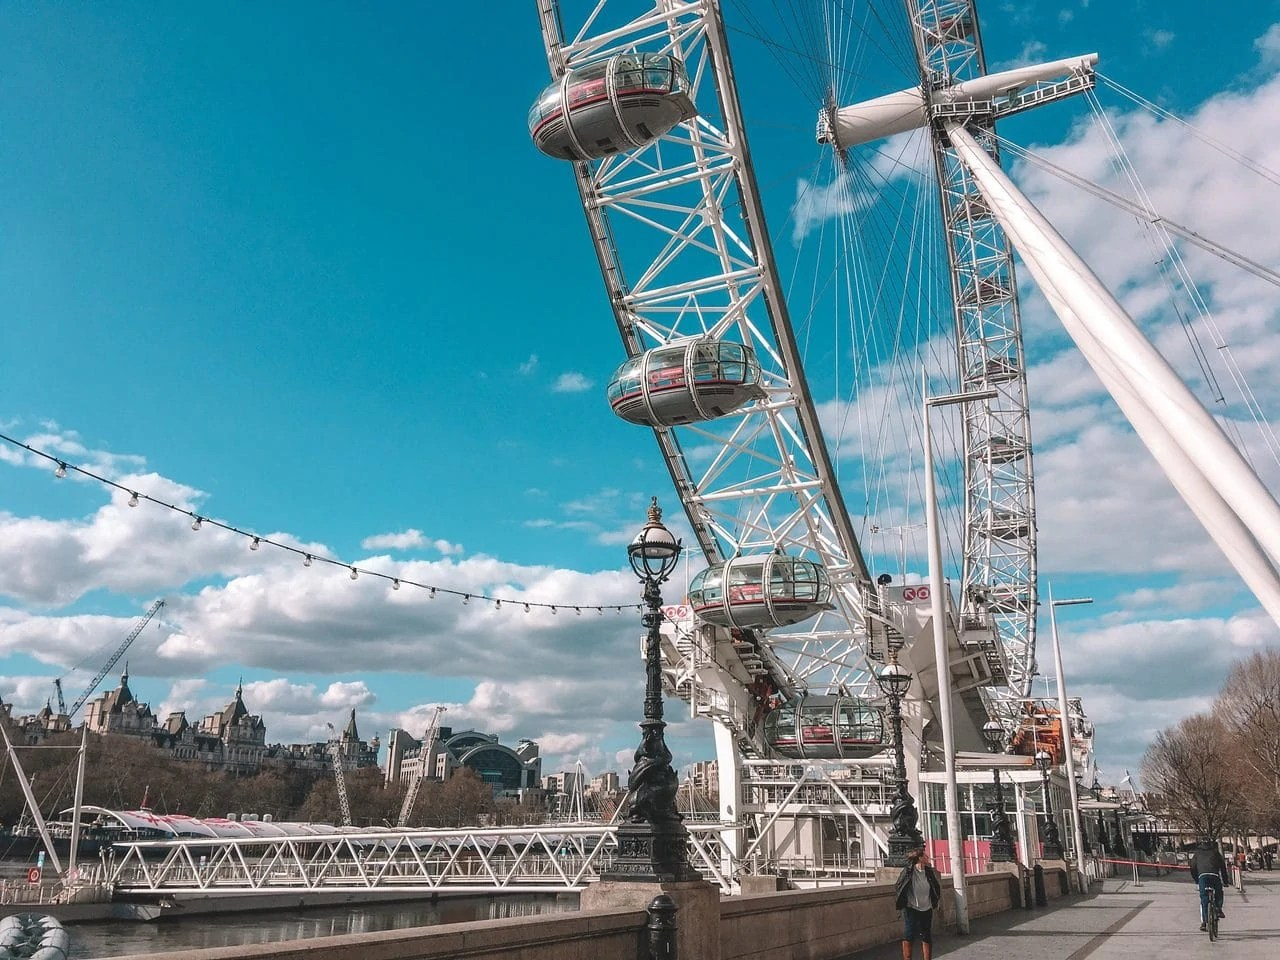 The London Eye during the April 2020 lockdown.